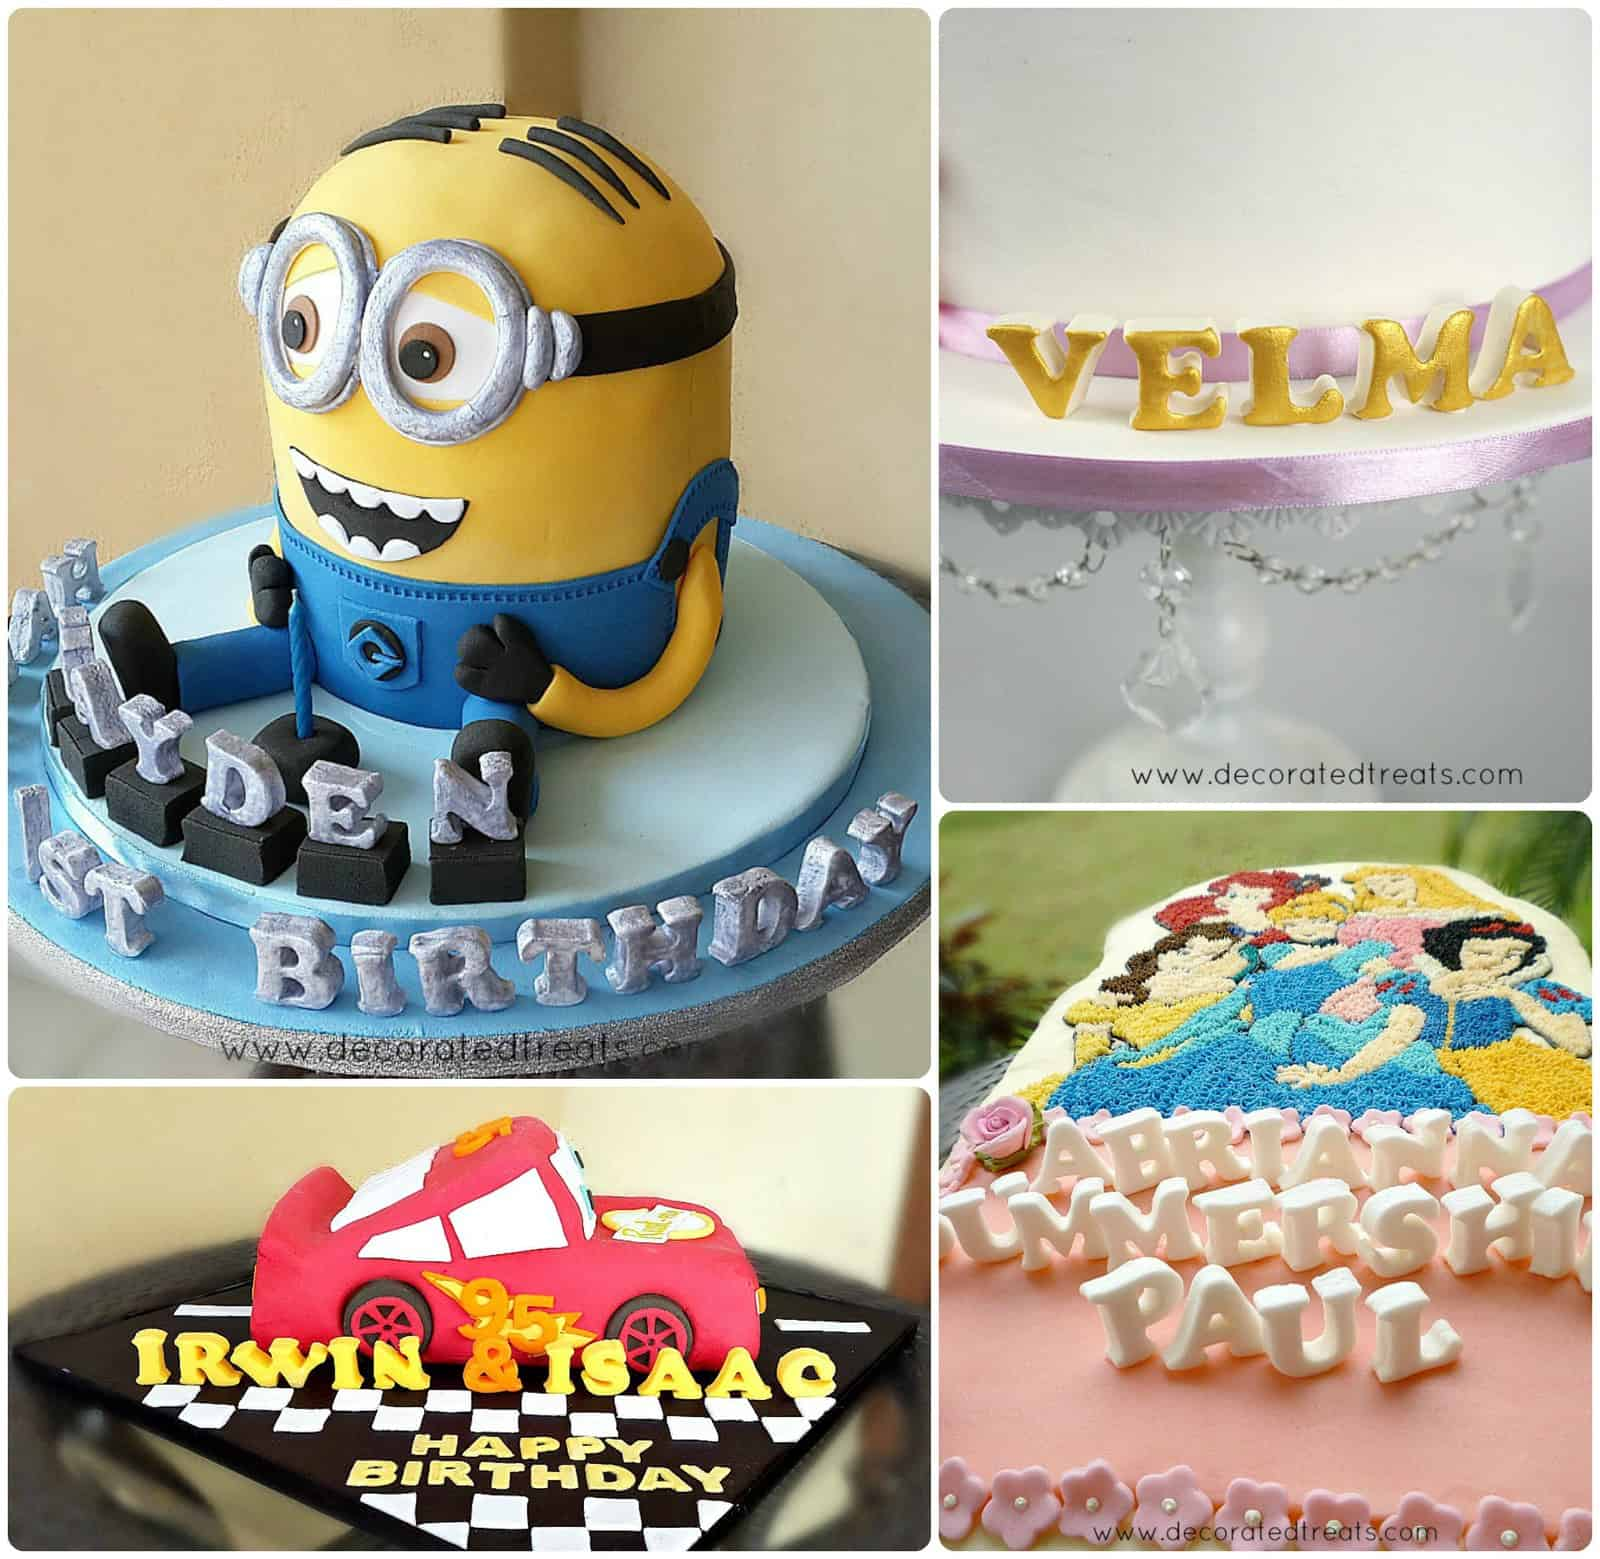 Poster showing 4 different cakes with 3d fondant letters decoration